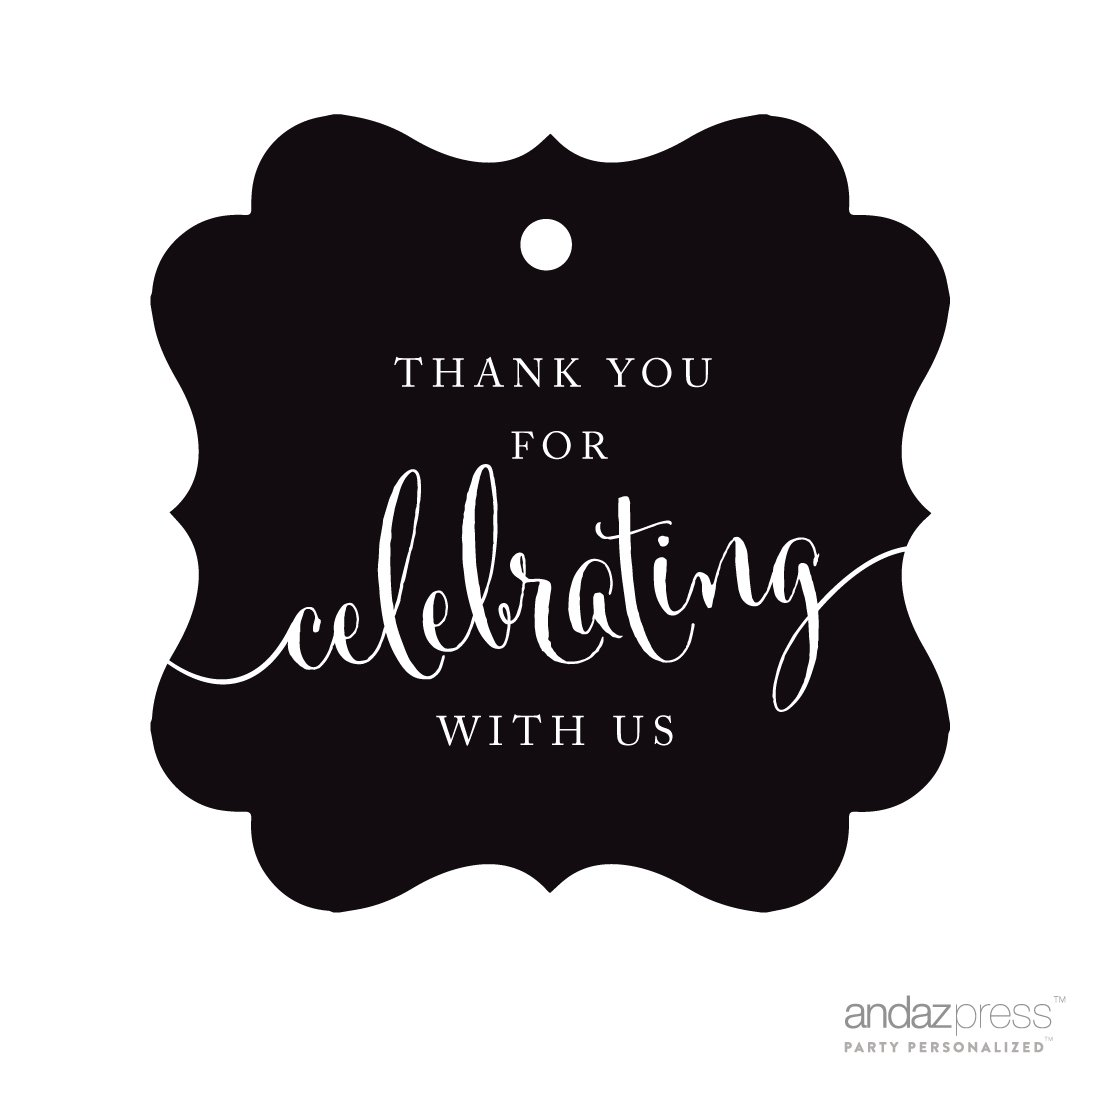 Andaz Press Fancy Frame Gift Tags, Thank You For Celebrating With Us, Black, 24-Pack, For Baby Bridal Wedding Shower, Kids 1st Sweet 16 Quinceanera Birthdays, Anniversary, Graduation, Baptism, Christening, Confirmation, Communion Party Favors, Gifts, Boxes, Bags, Treats and Presents B01031HXY6   -